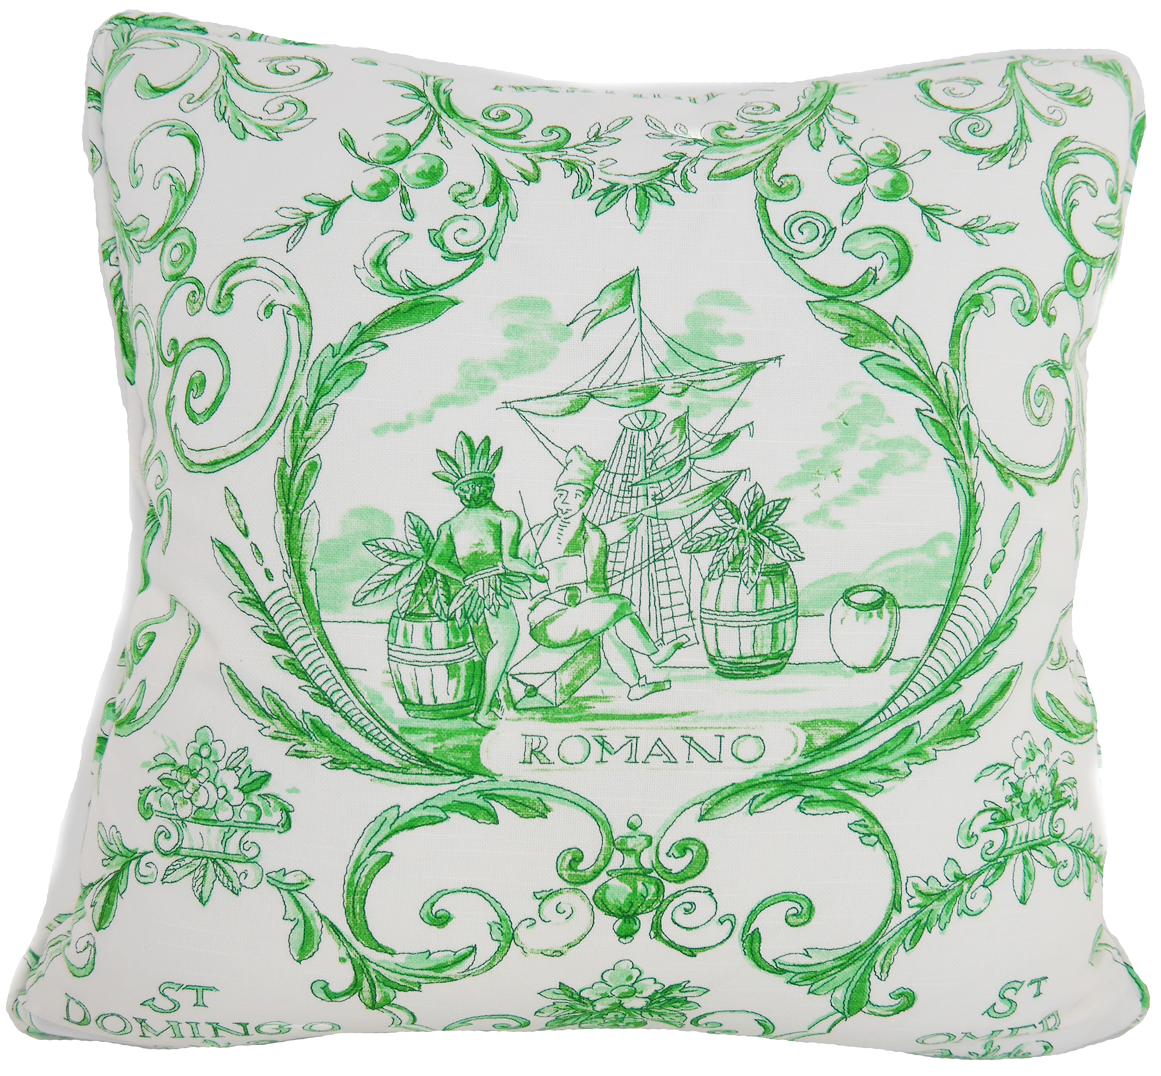 Martiniek White Throw Pillow Cover - Carleton Varney